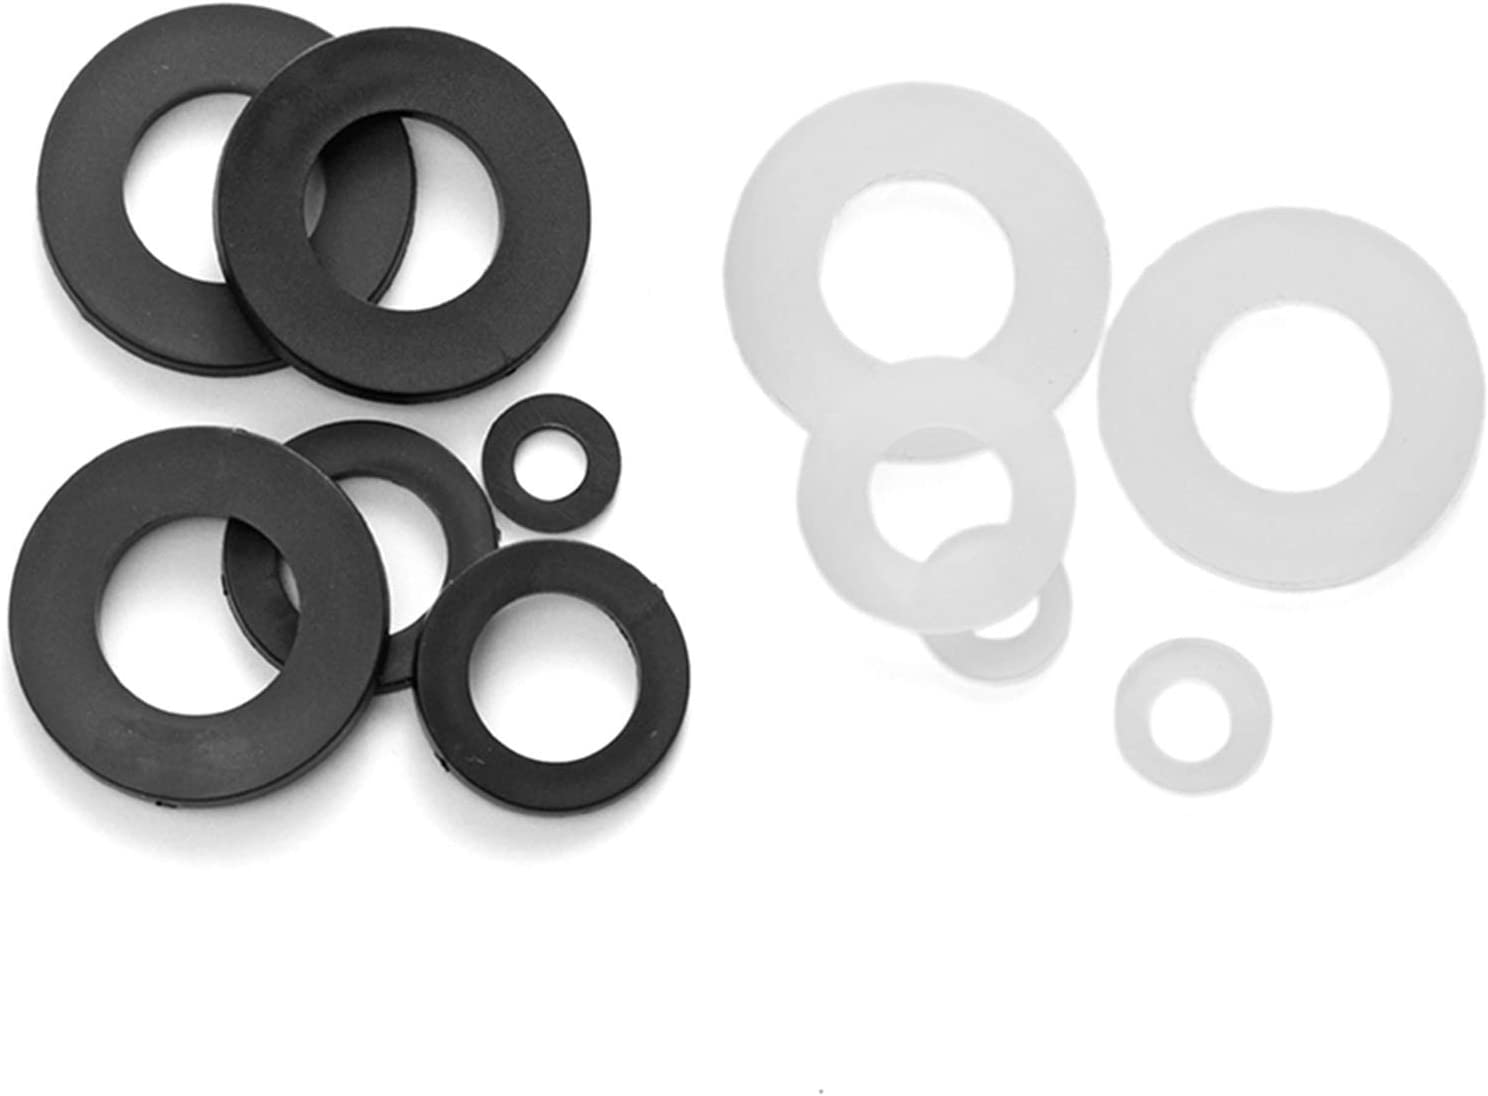 Color : Black , Inner Diameter : M12x24x2 10-100pcs M2 M2.5 M3 M4 M5 M6 M8 M10 M12 M16 White// Black Plastic Flat Washer Insulation Seals Gasket Ring high Strength Stainless Steel 50pcs